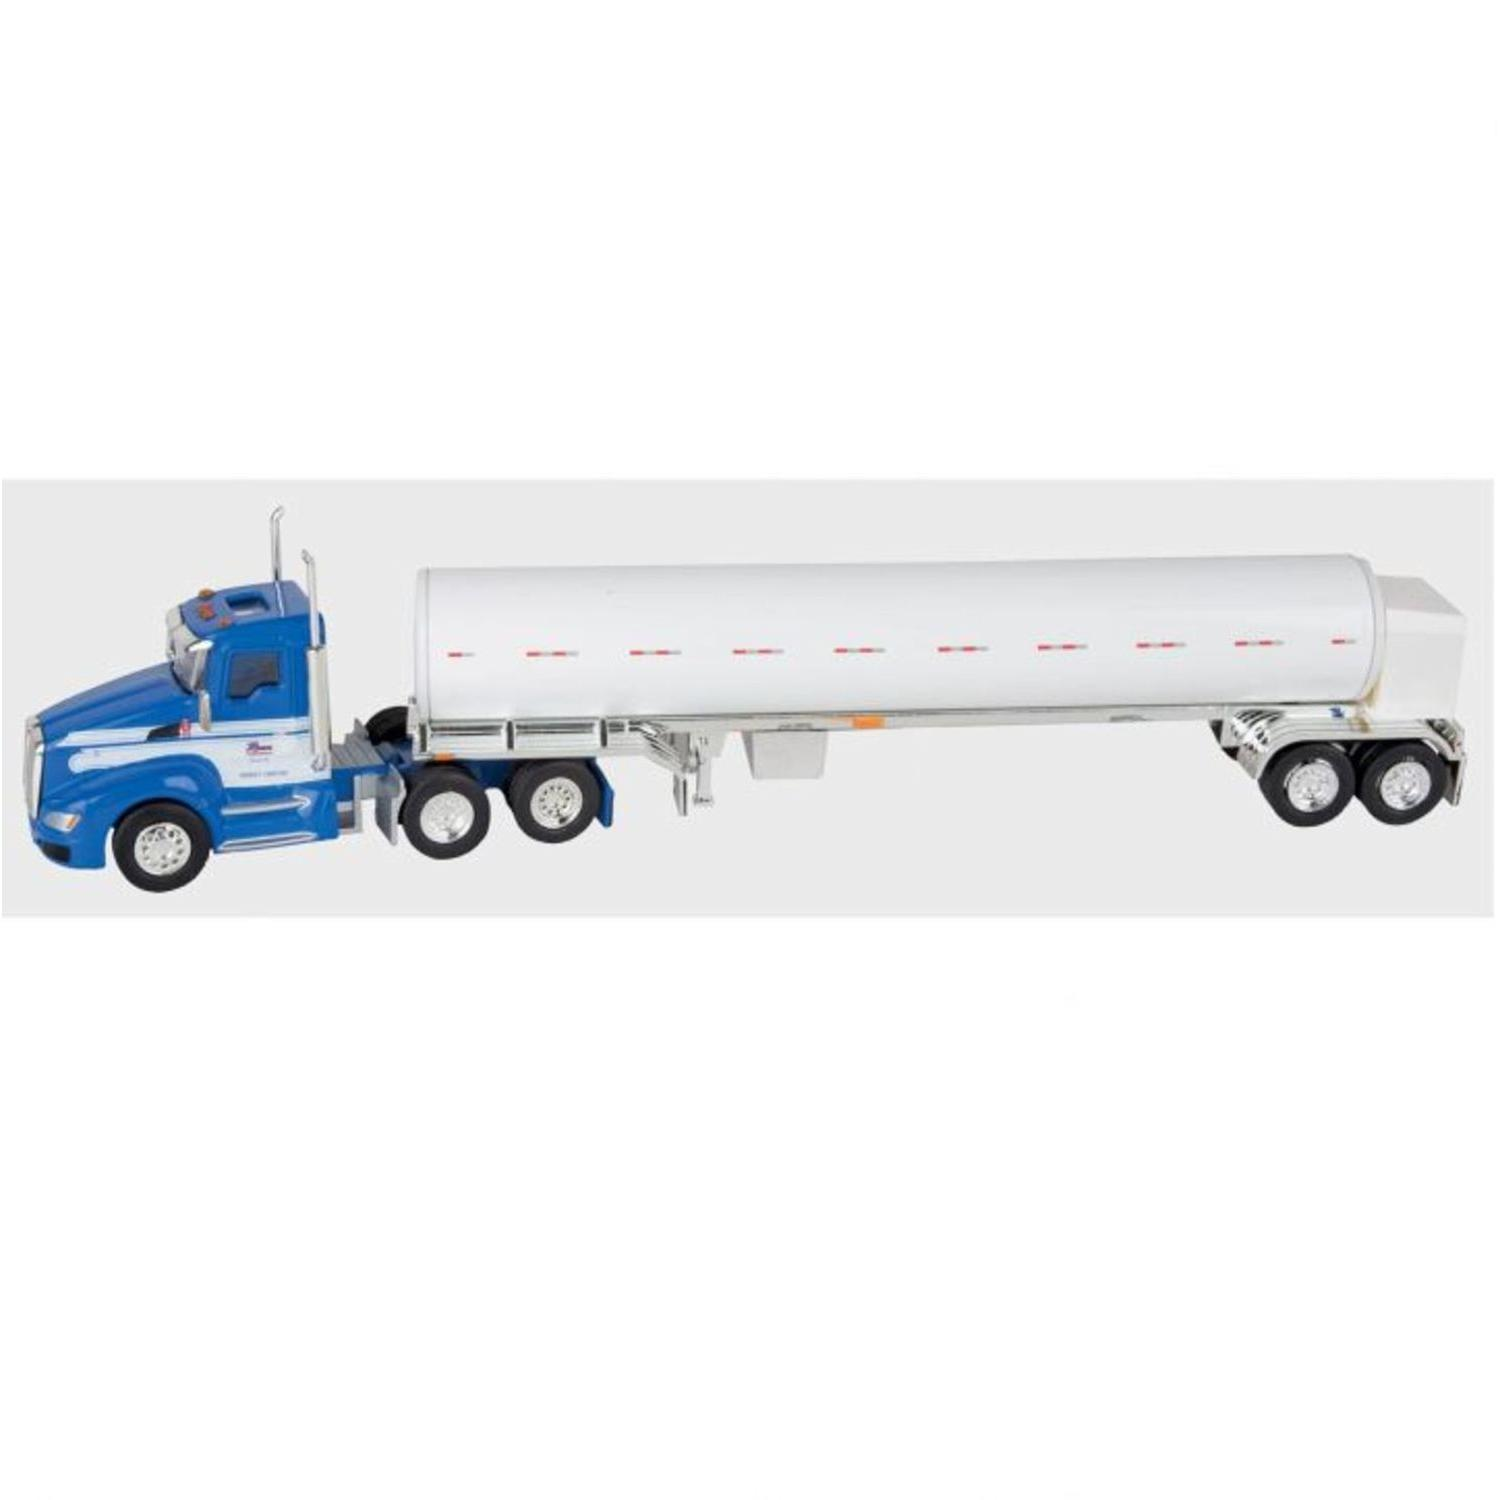 H0 Kenworth T660 Day-Cab Tractor w/Cryo Tank Trailer - Assembled